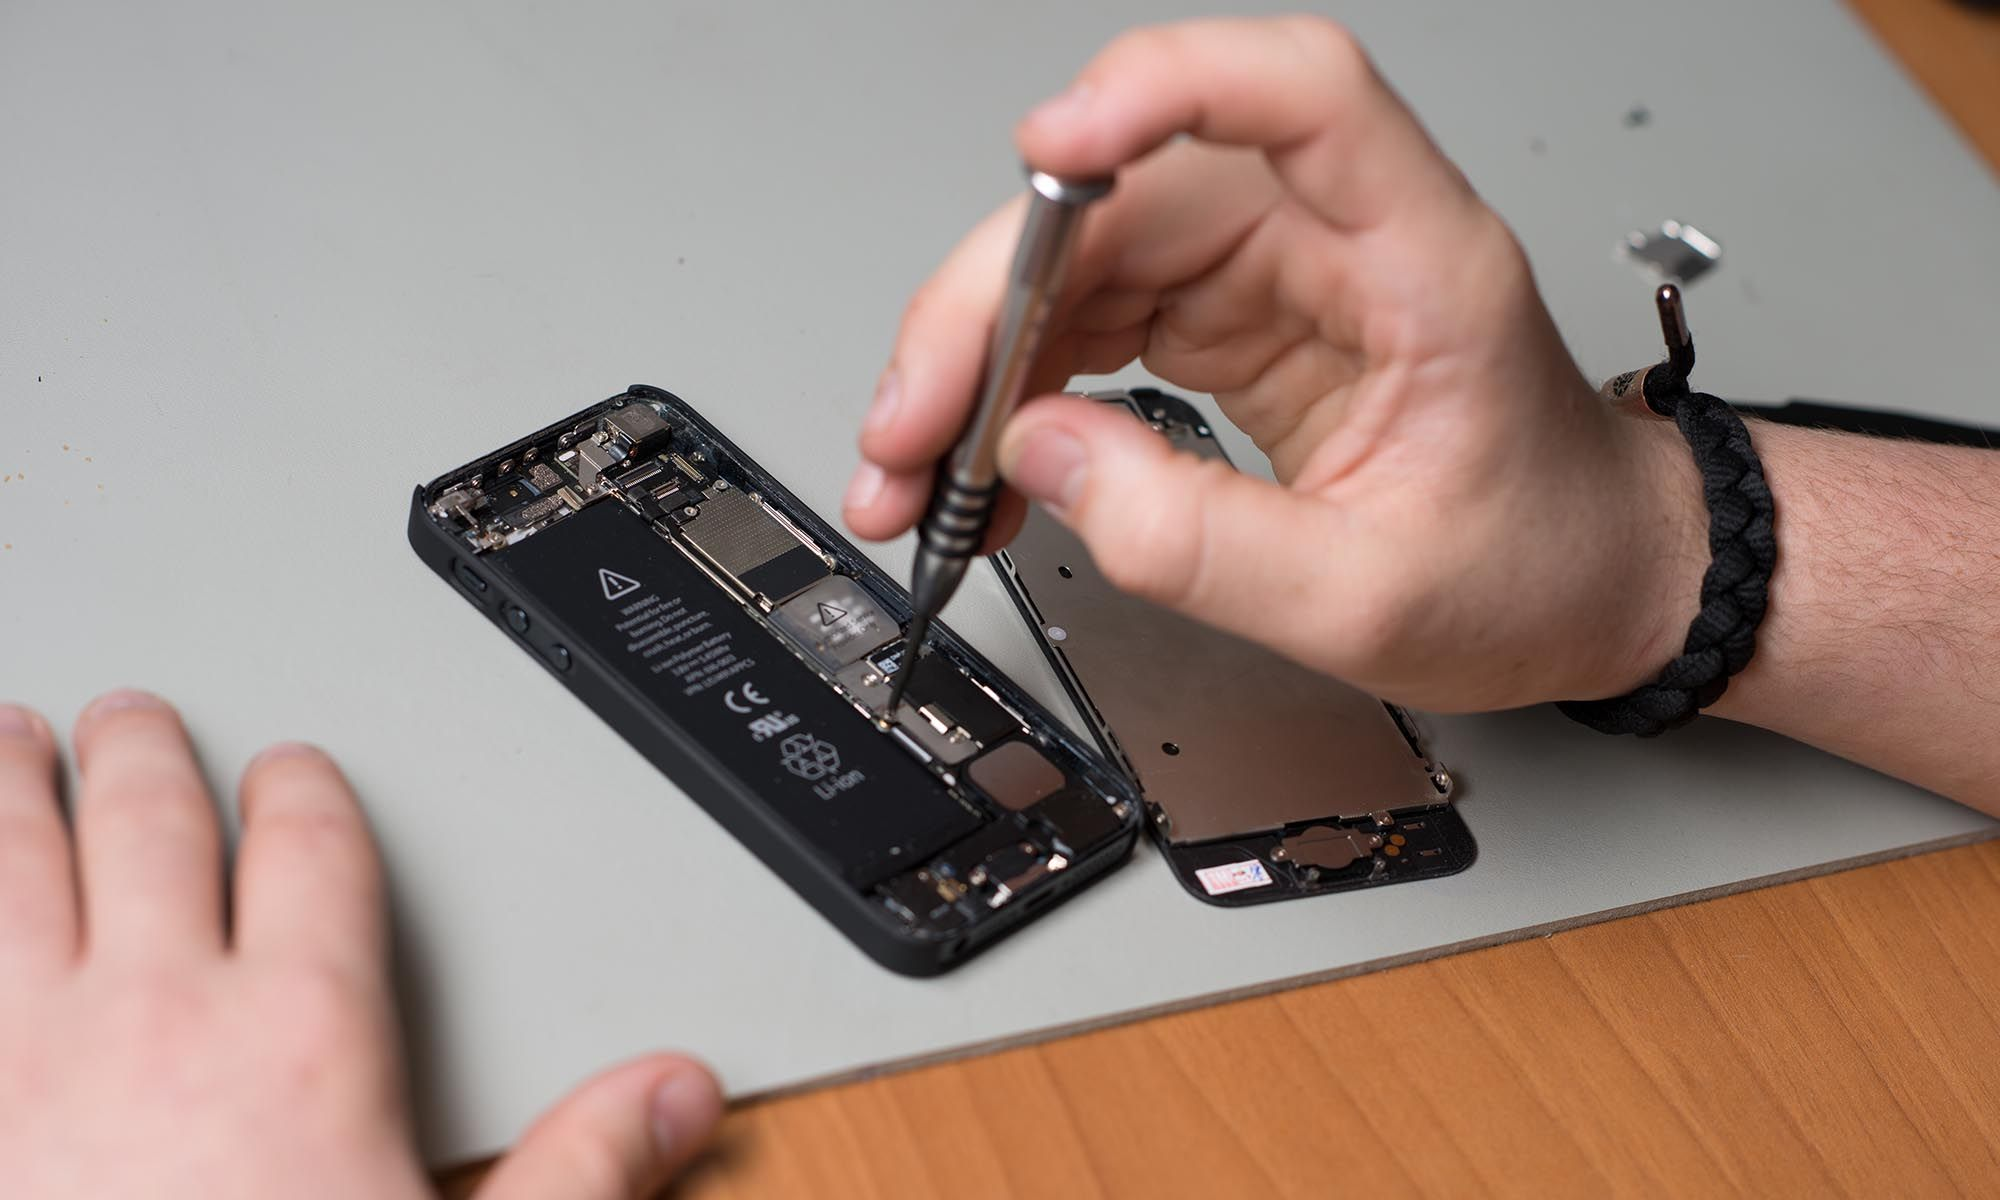 iPhone Repairs Near Me iPodfixnyc Iphone repair